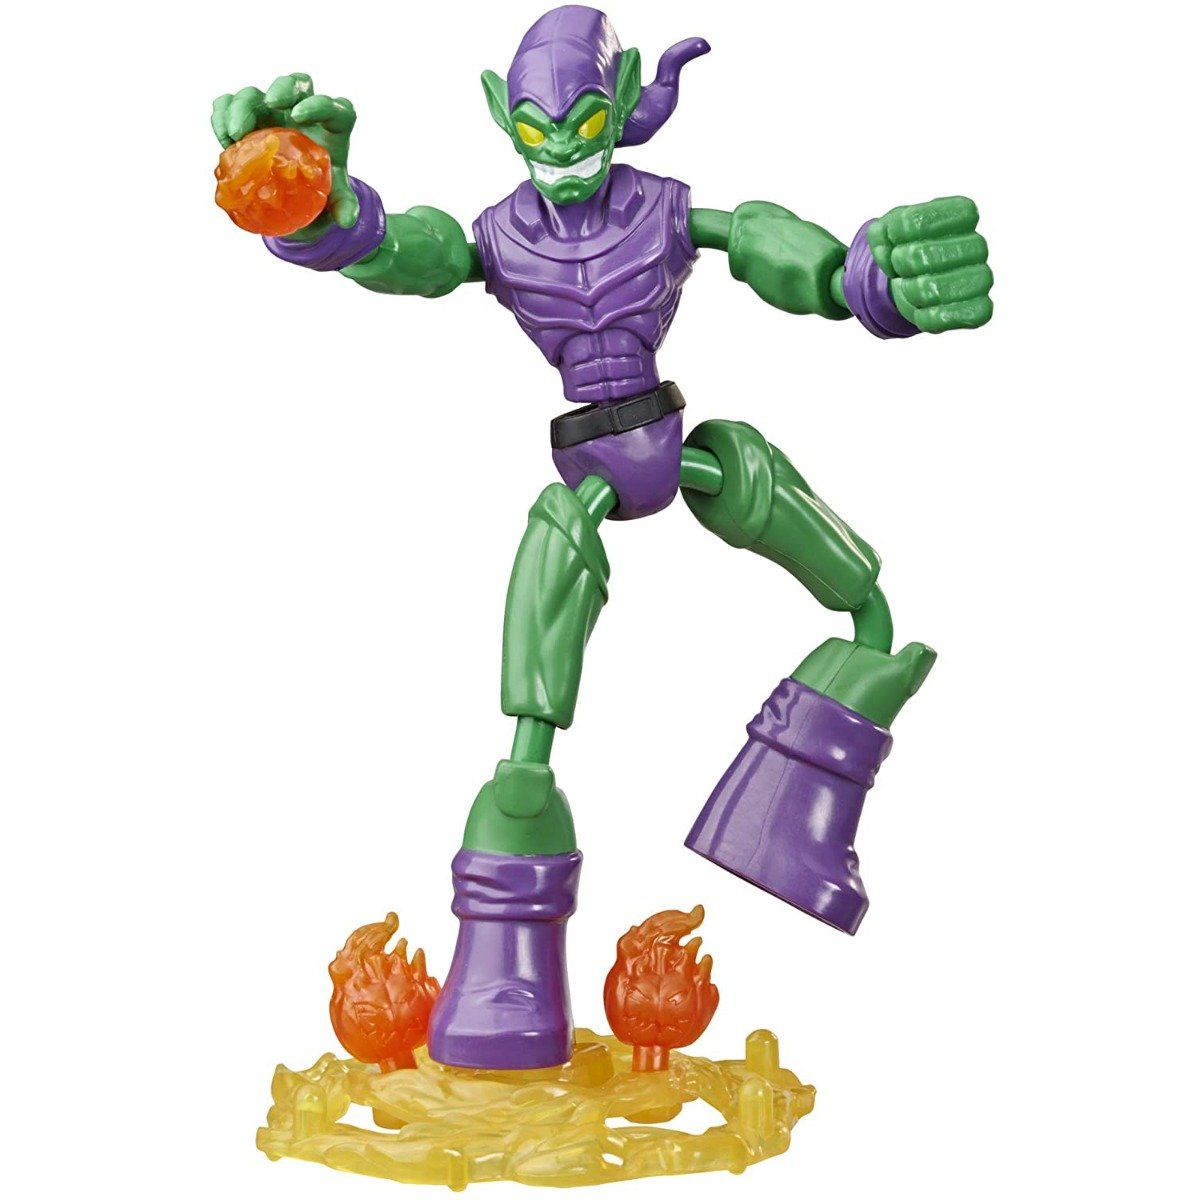 Figurina flexibila Spiderman Bend and Flex, Green Goblin E8973